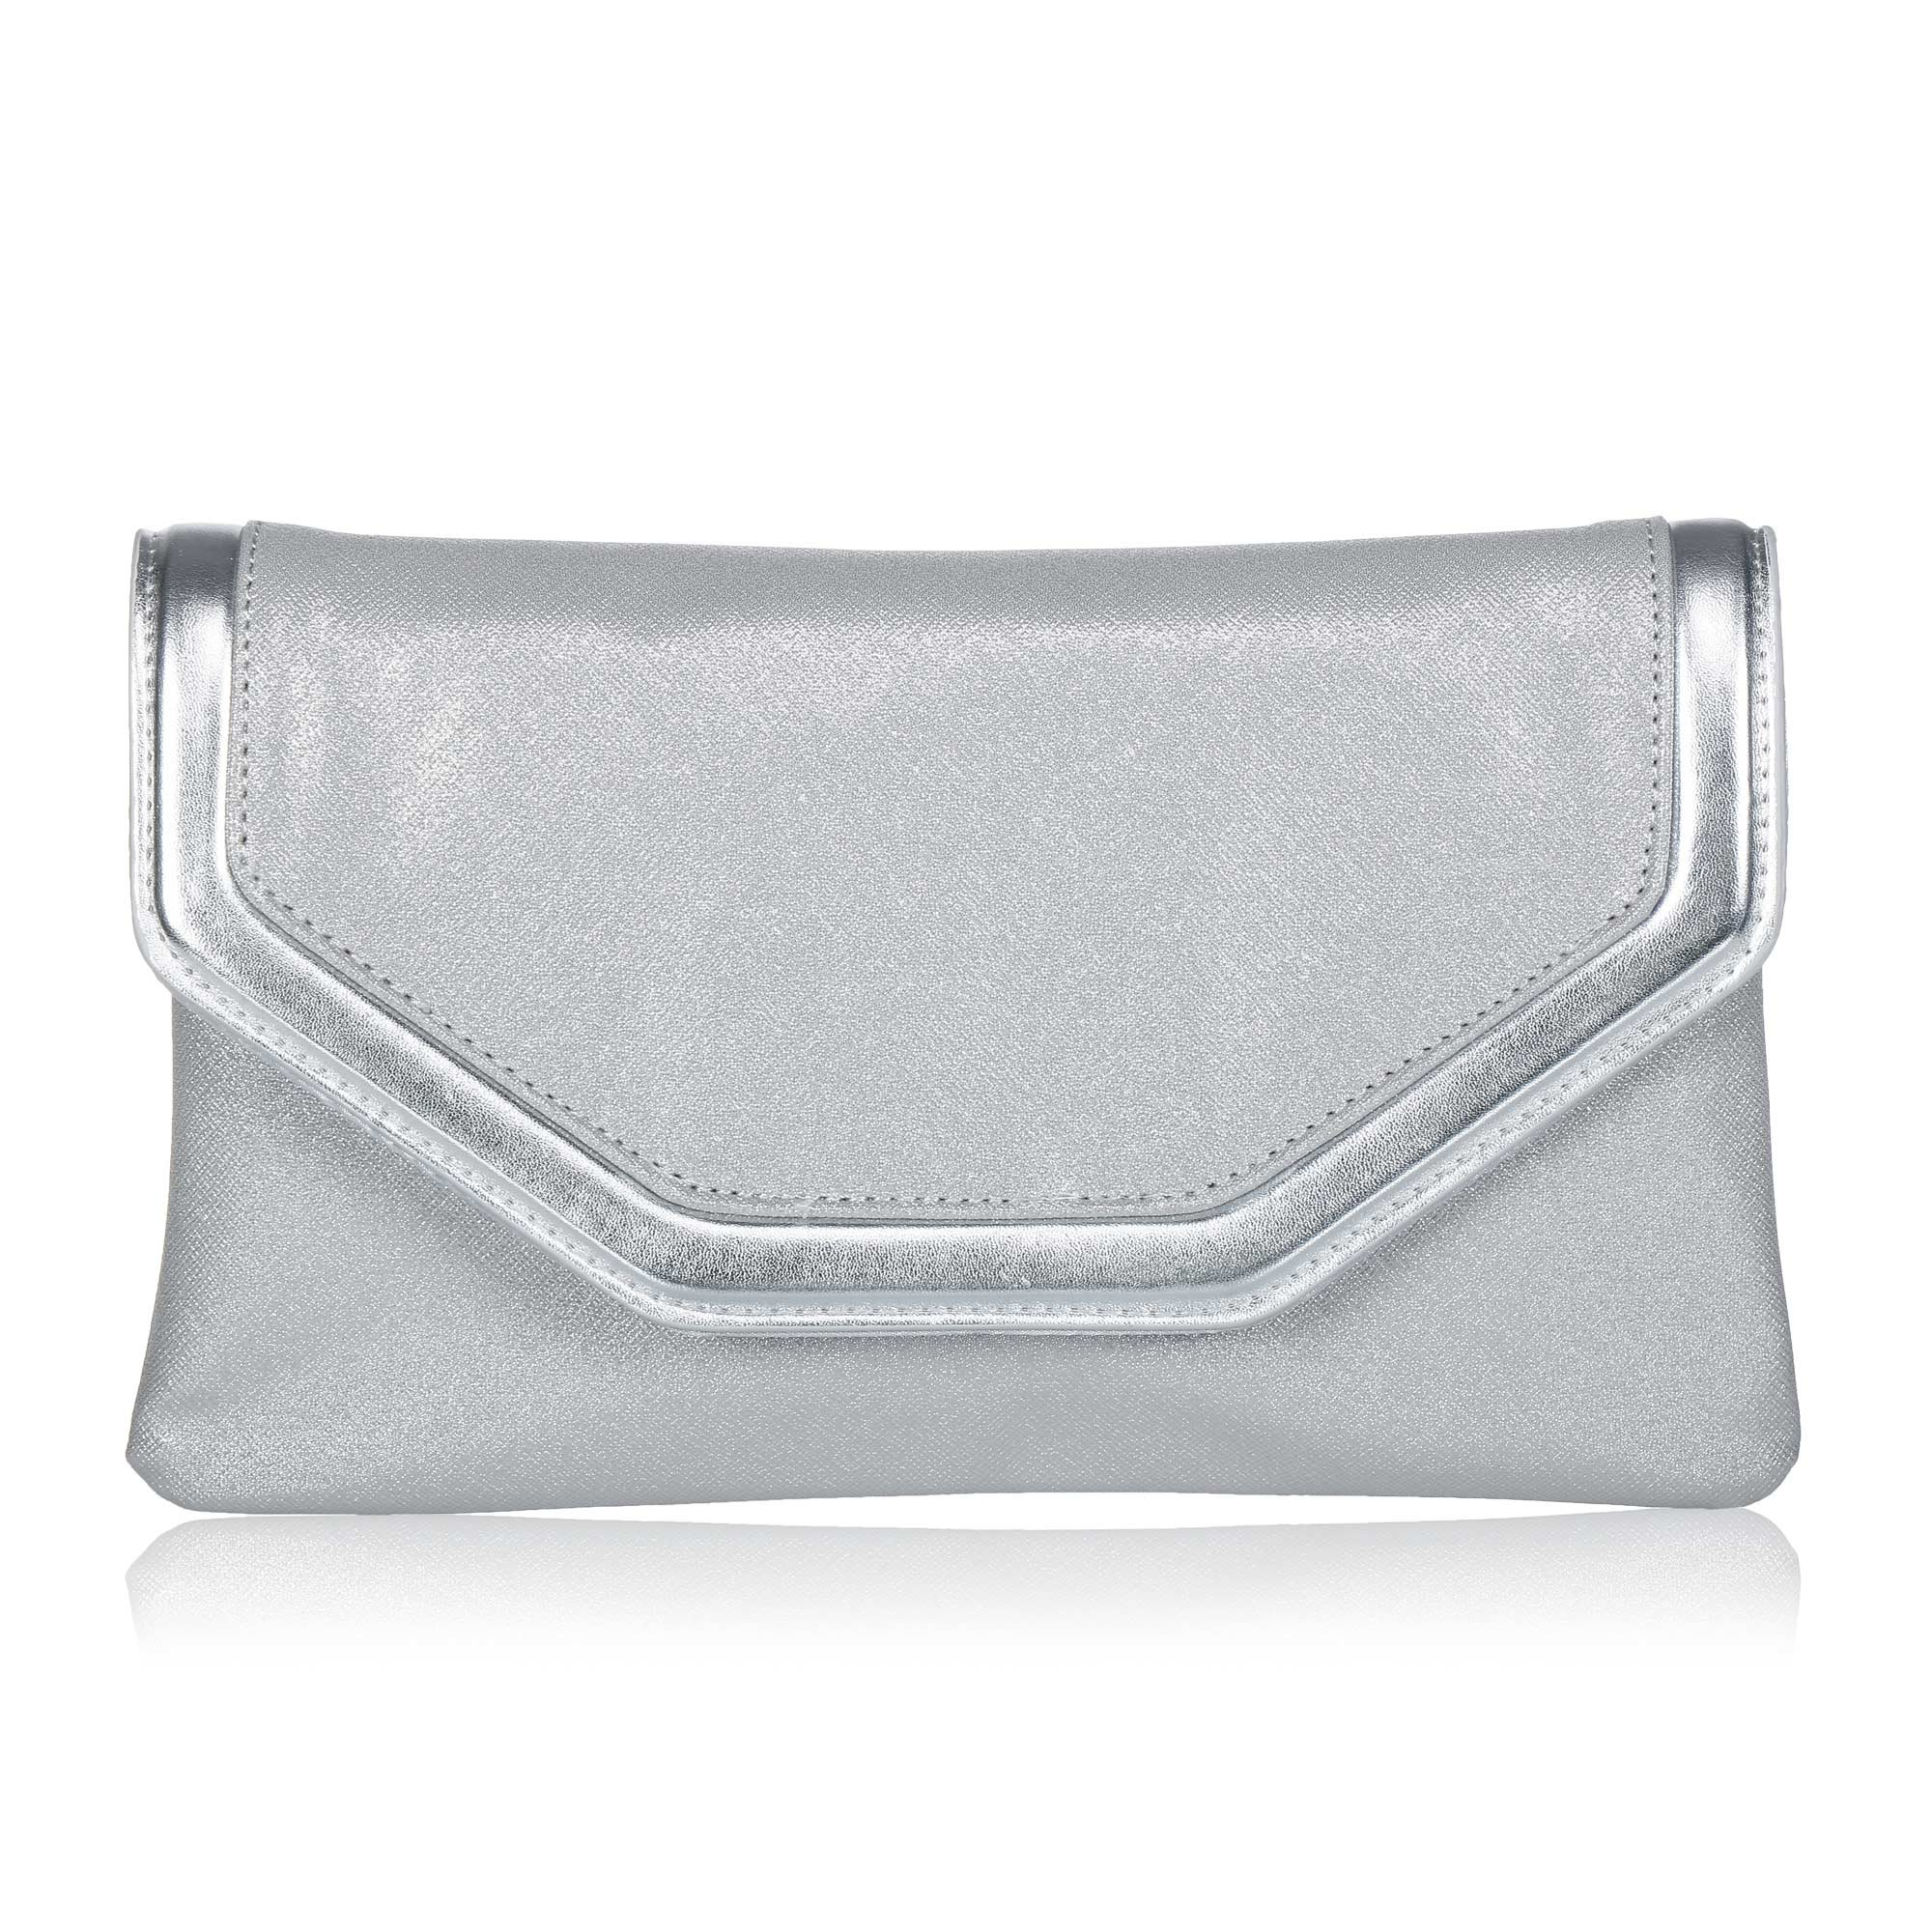 Classic PU Leather Evening Clutch,WALLYN'S Party Purse Evening Bag With Chain Strap(Silver)